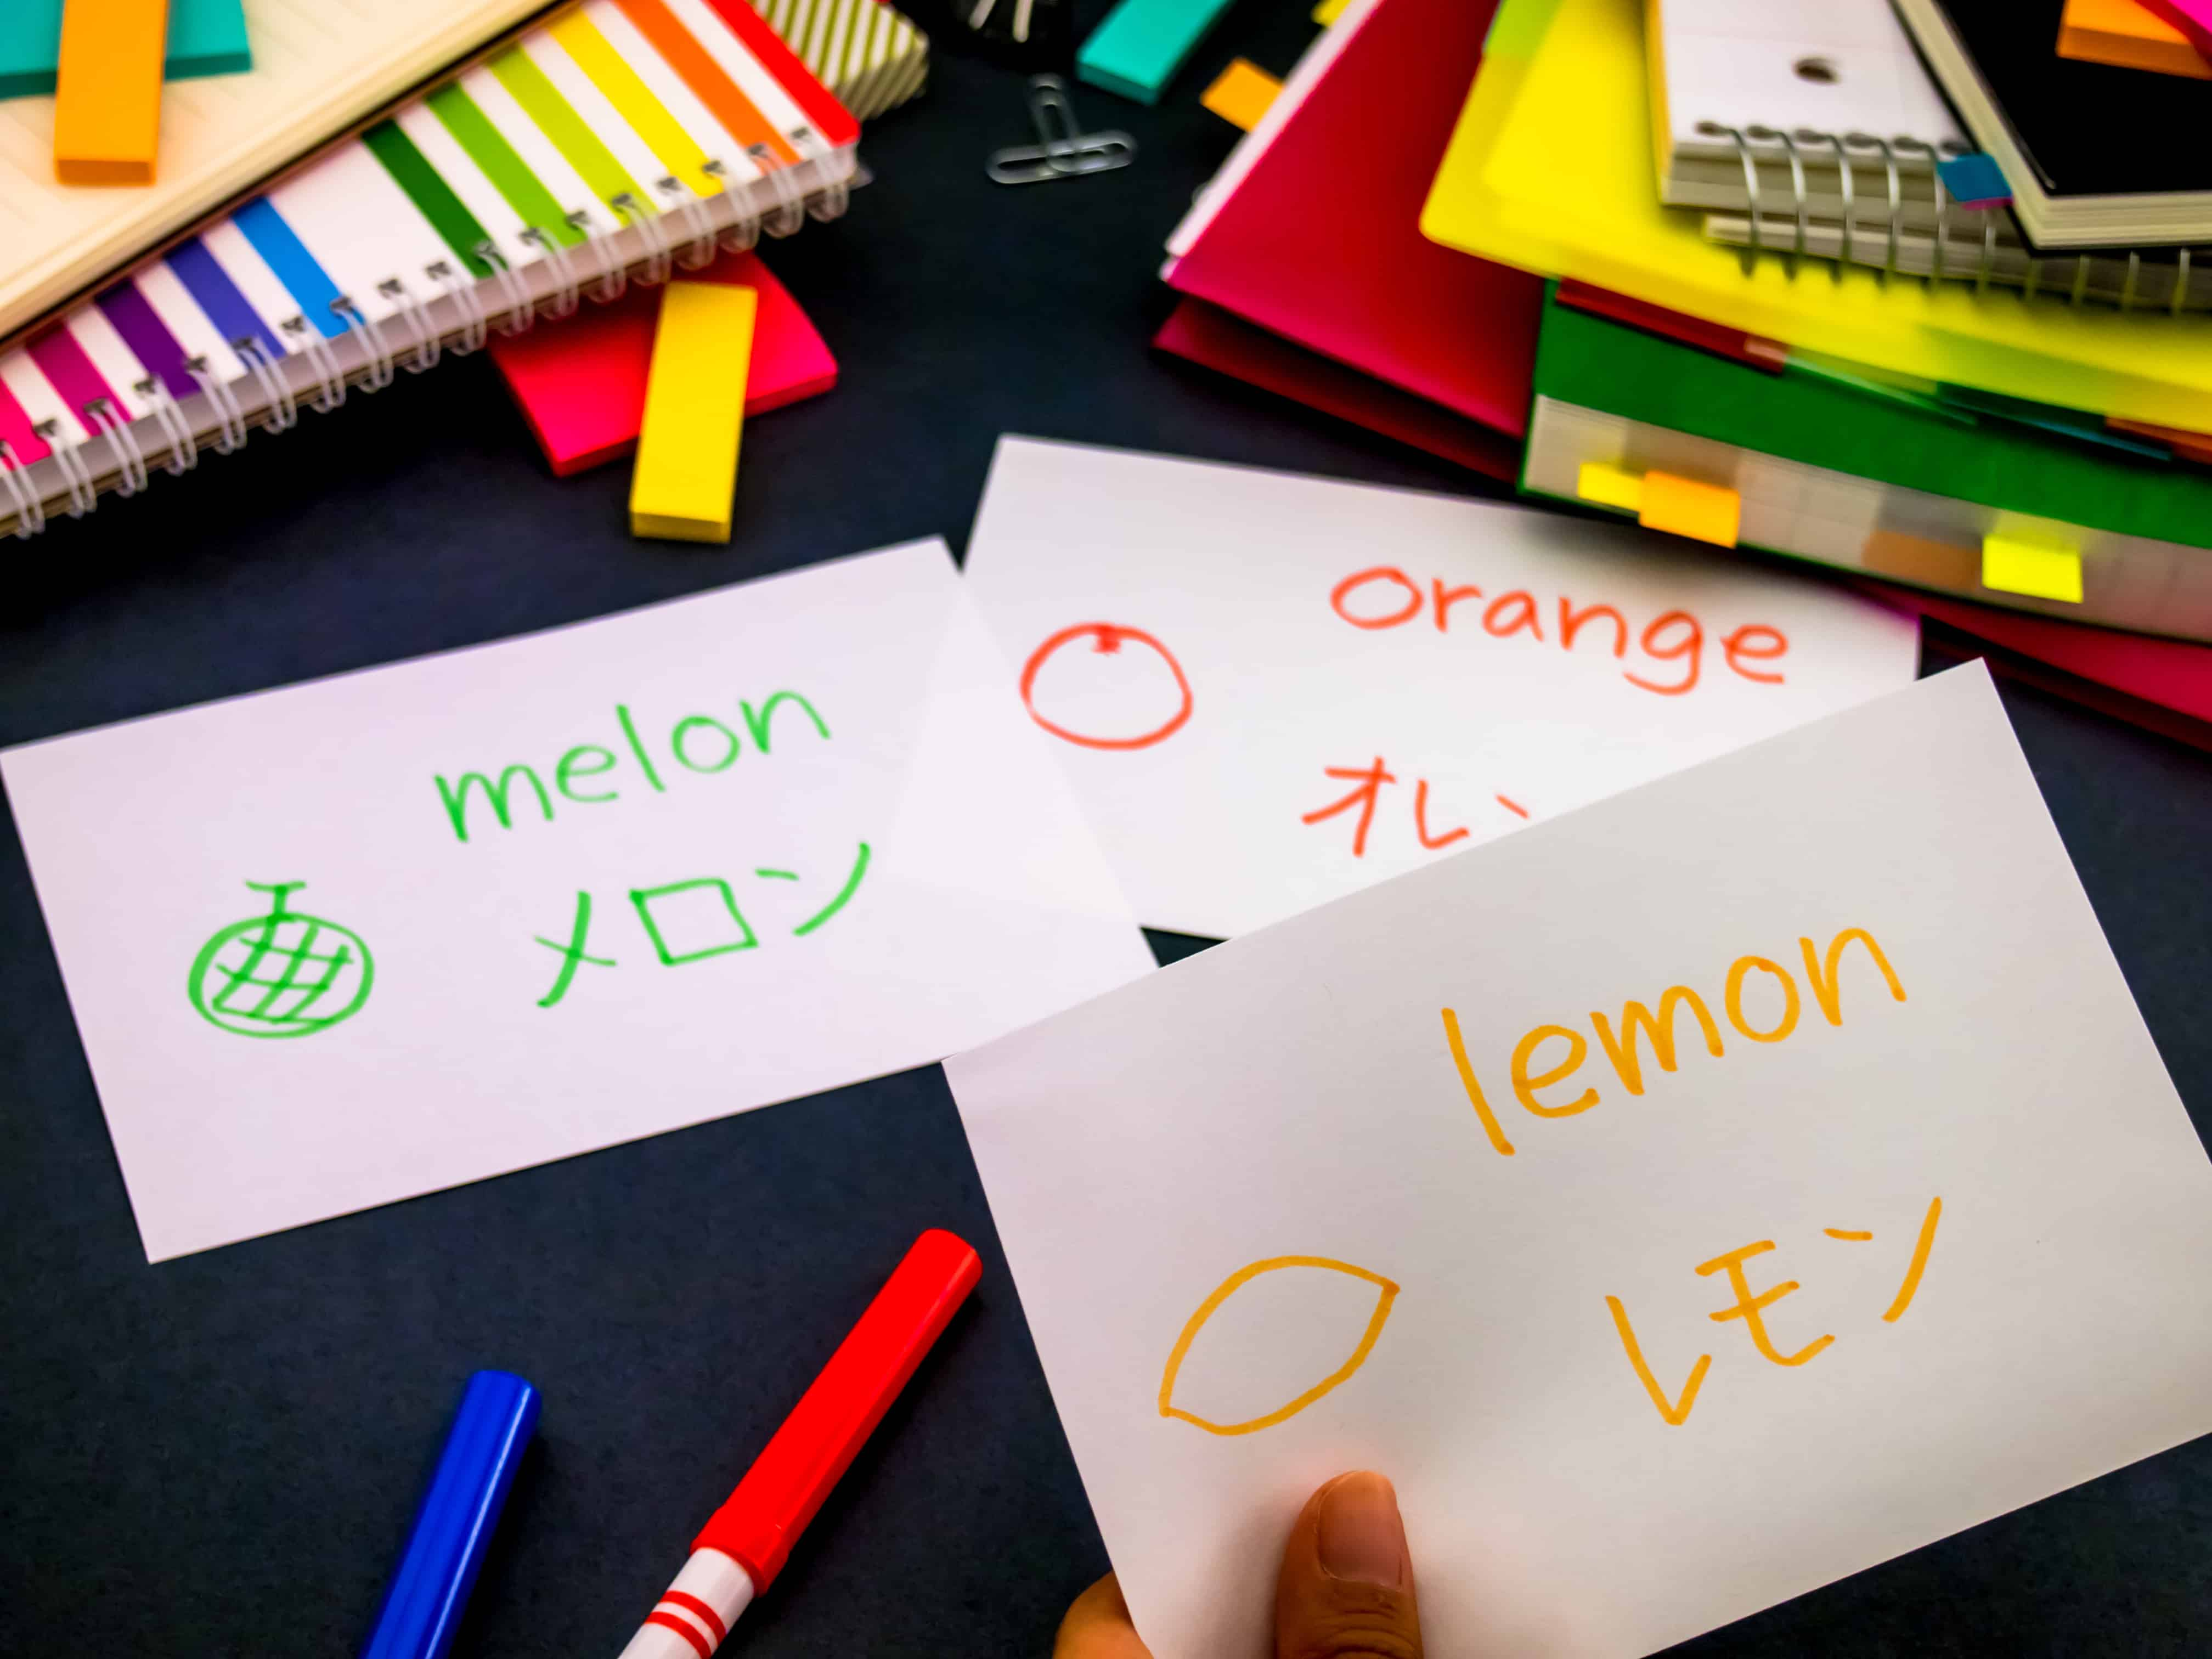 Japanese flashcards with the words 'lemon' and 'melon' - you can learn Japanese faster by recognizing that many words are the same in Japanese and English!